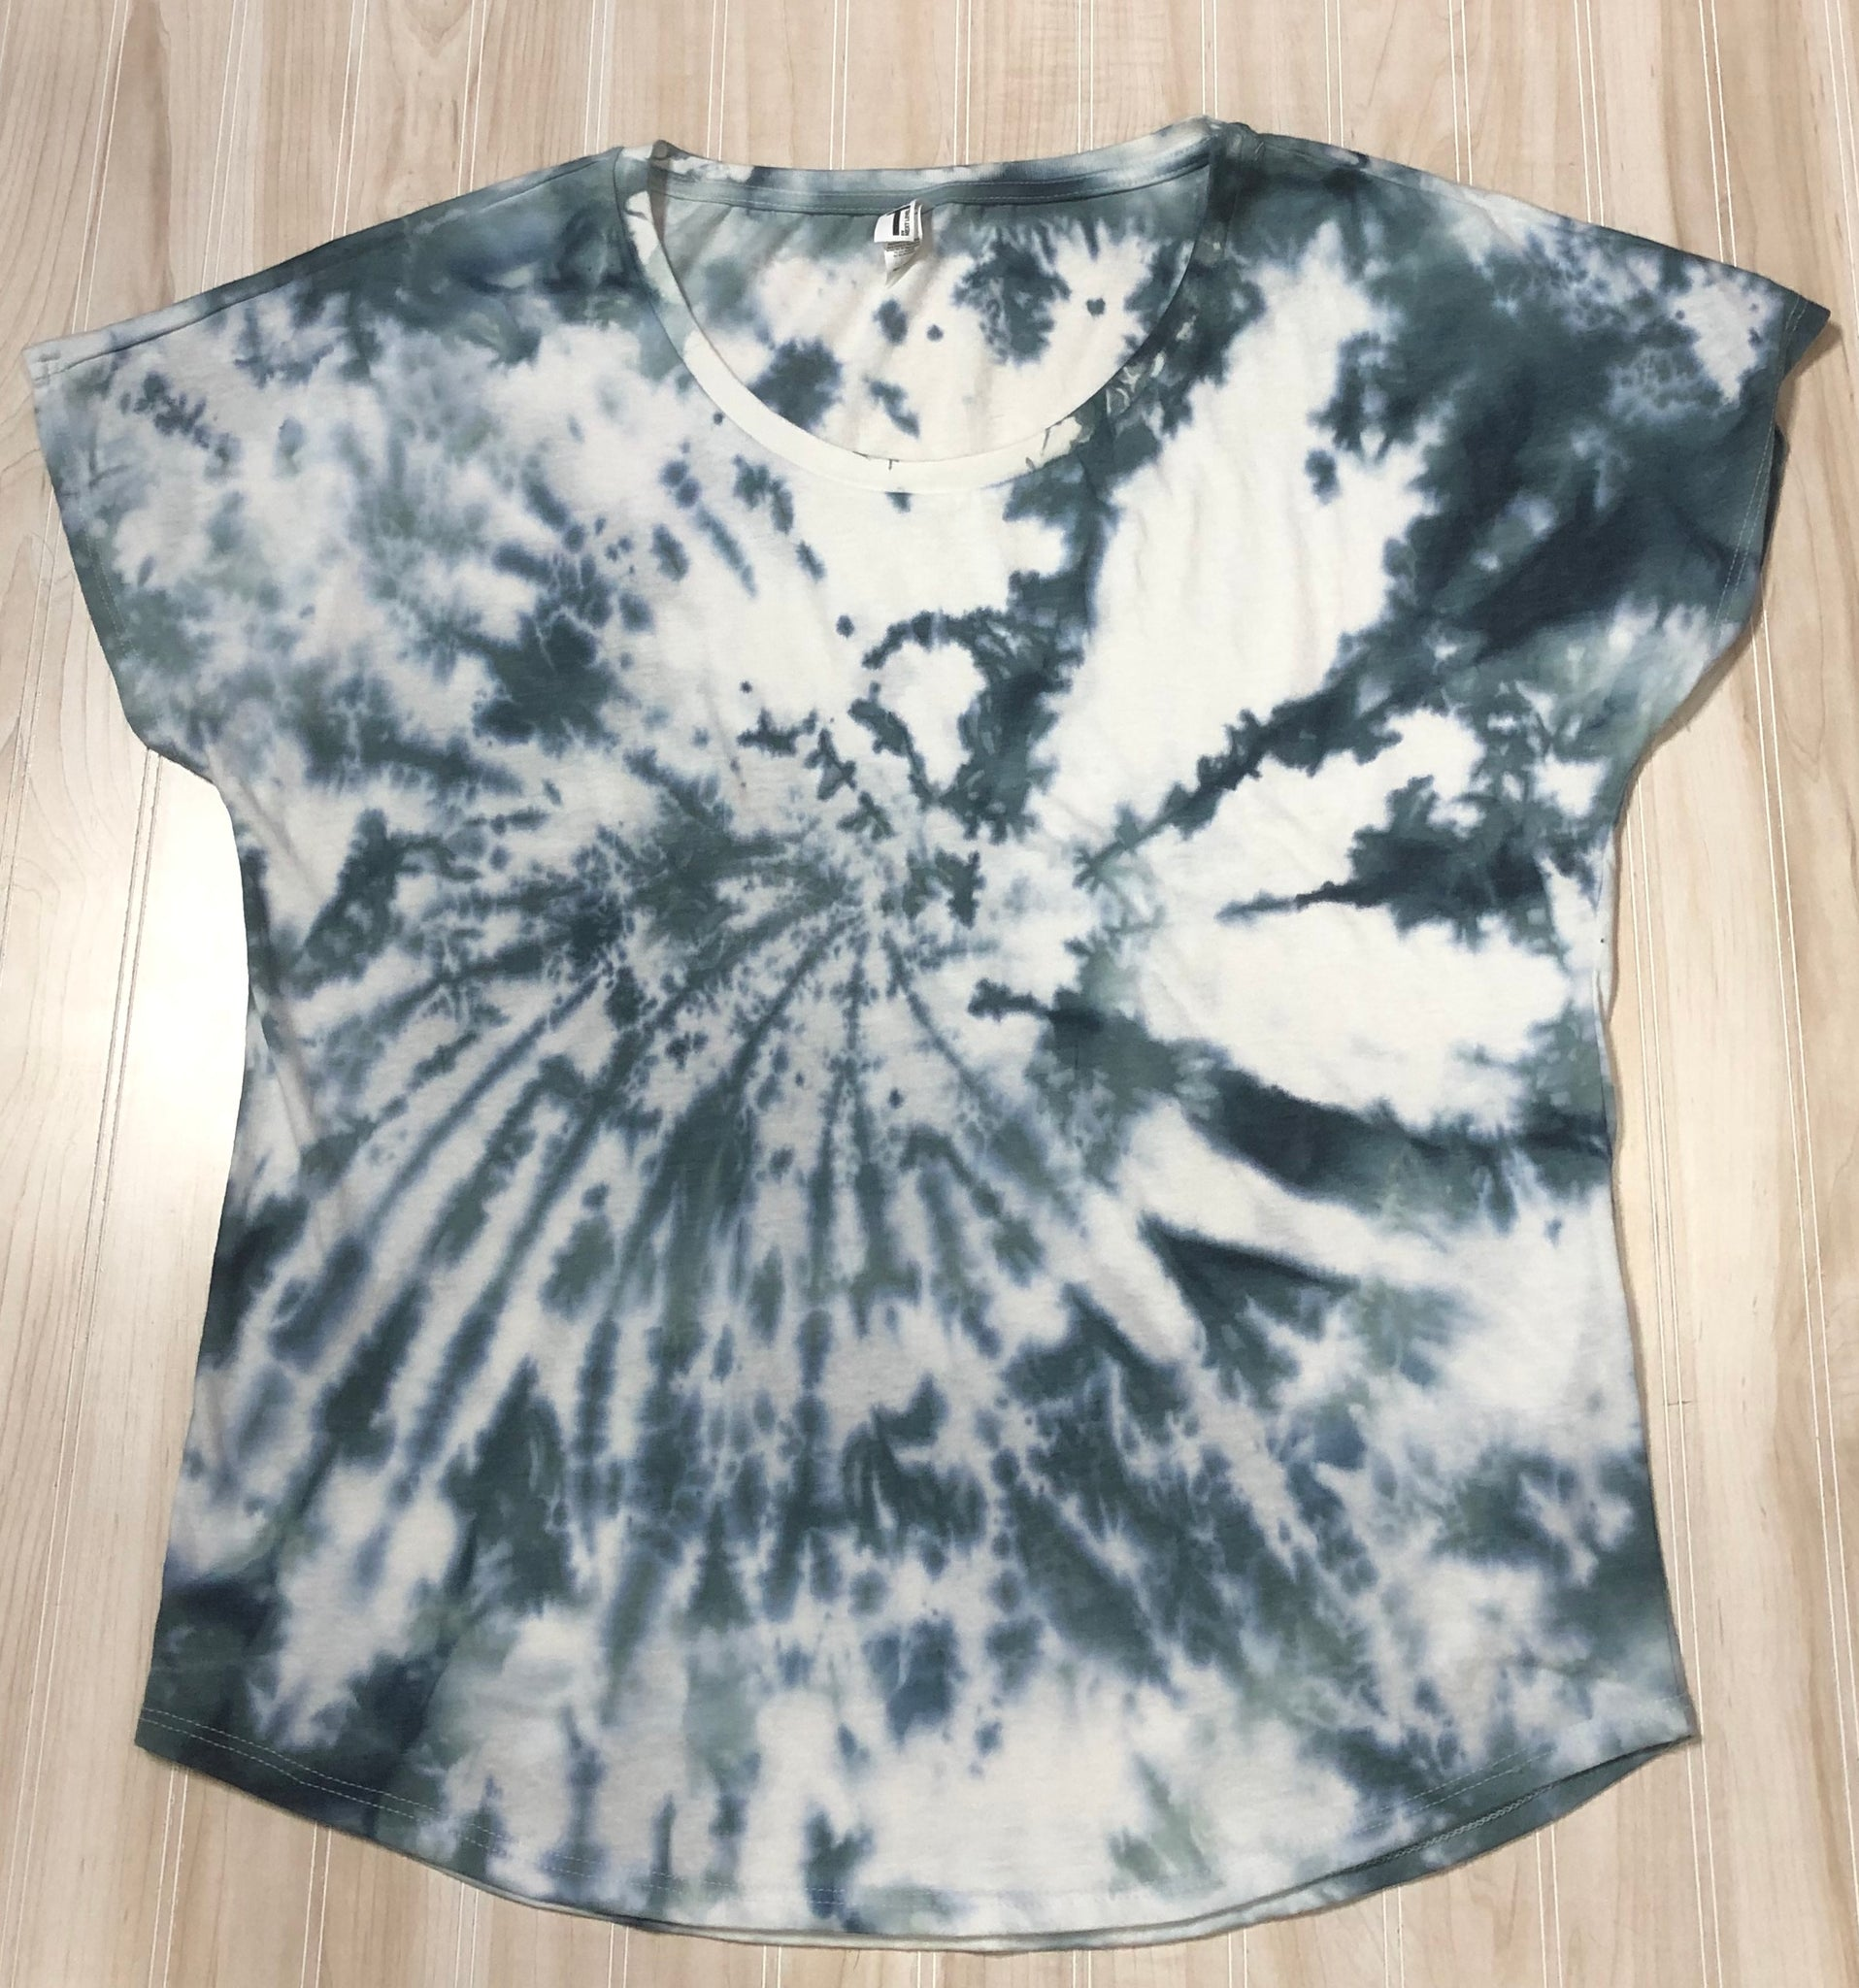 Short Sleeve Tye Dye Top